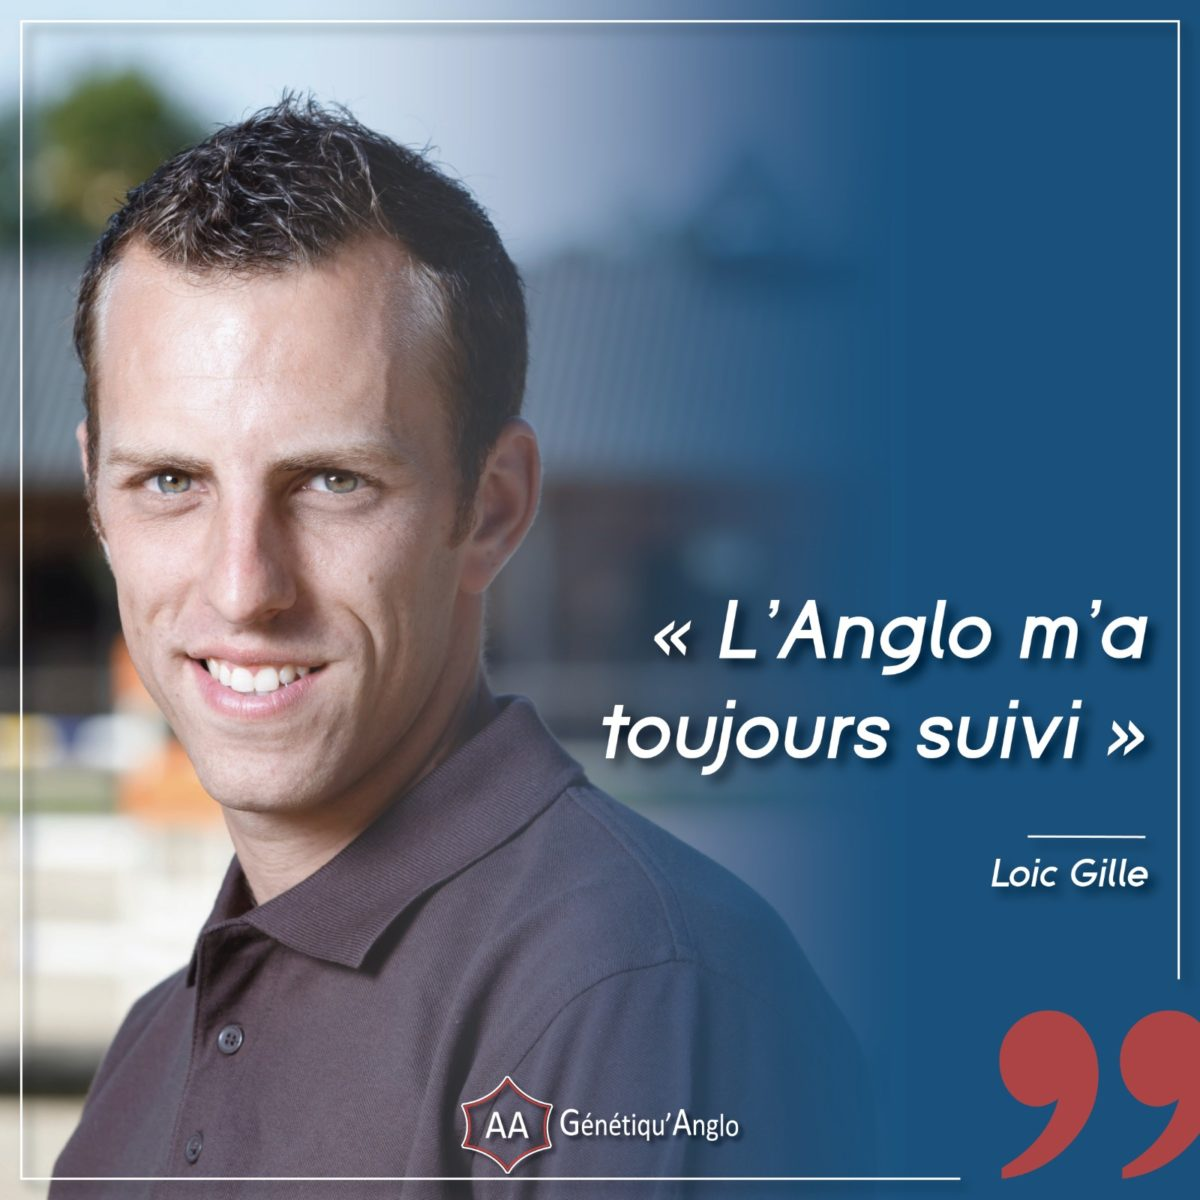 « L'Anglo m'a toujours suivi » – Loic GILLE